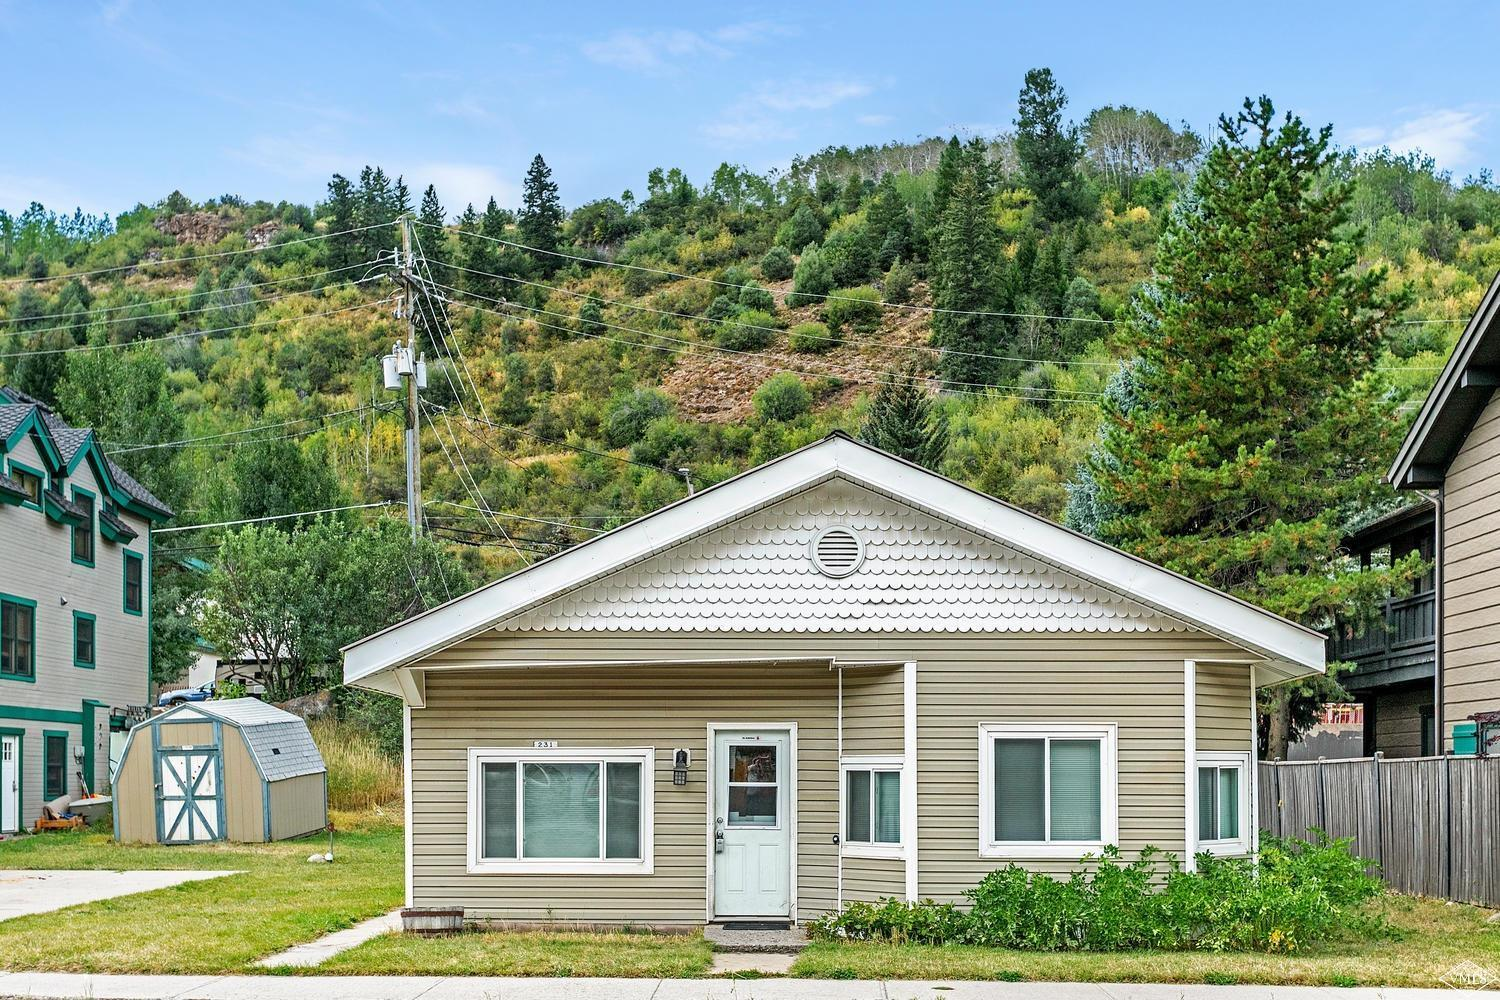 Premium location in the heart of Downtown Minturn, this 3 bedroom, 2 bath home on an oversized lot is zoned mixed use for commercial and residential and has incredible potential! Use it as a rental, redevelopment or move in & make your home in the quaint & desirable Town of Minturn. Situated with frontage on 2 streets, plenty of parking & storage, the home is just steps to the shops & restaurants, community garden, bus to Vail & the Eagle River. Call for information on development options.